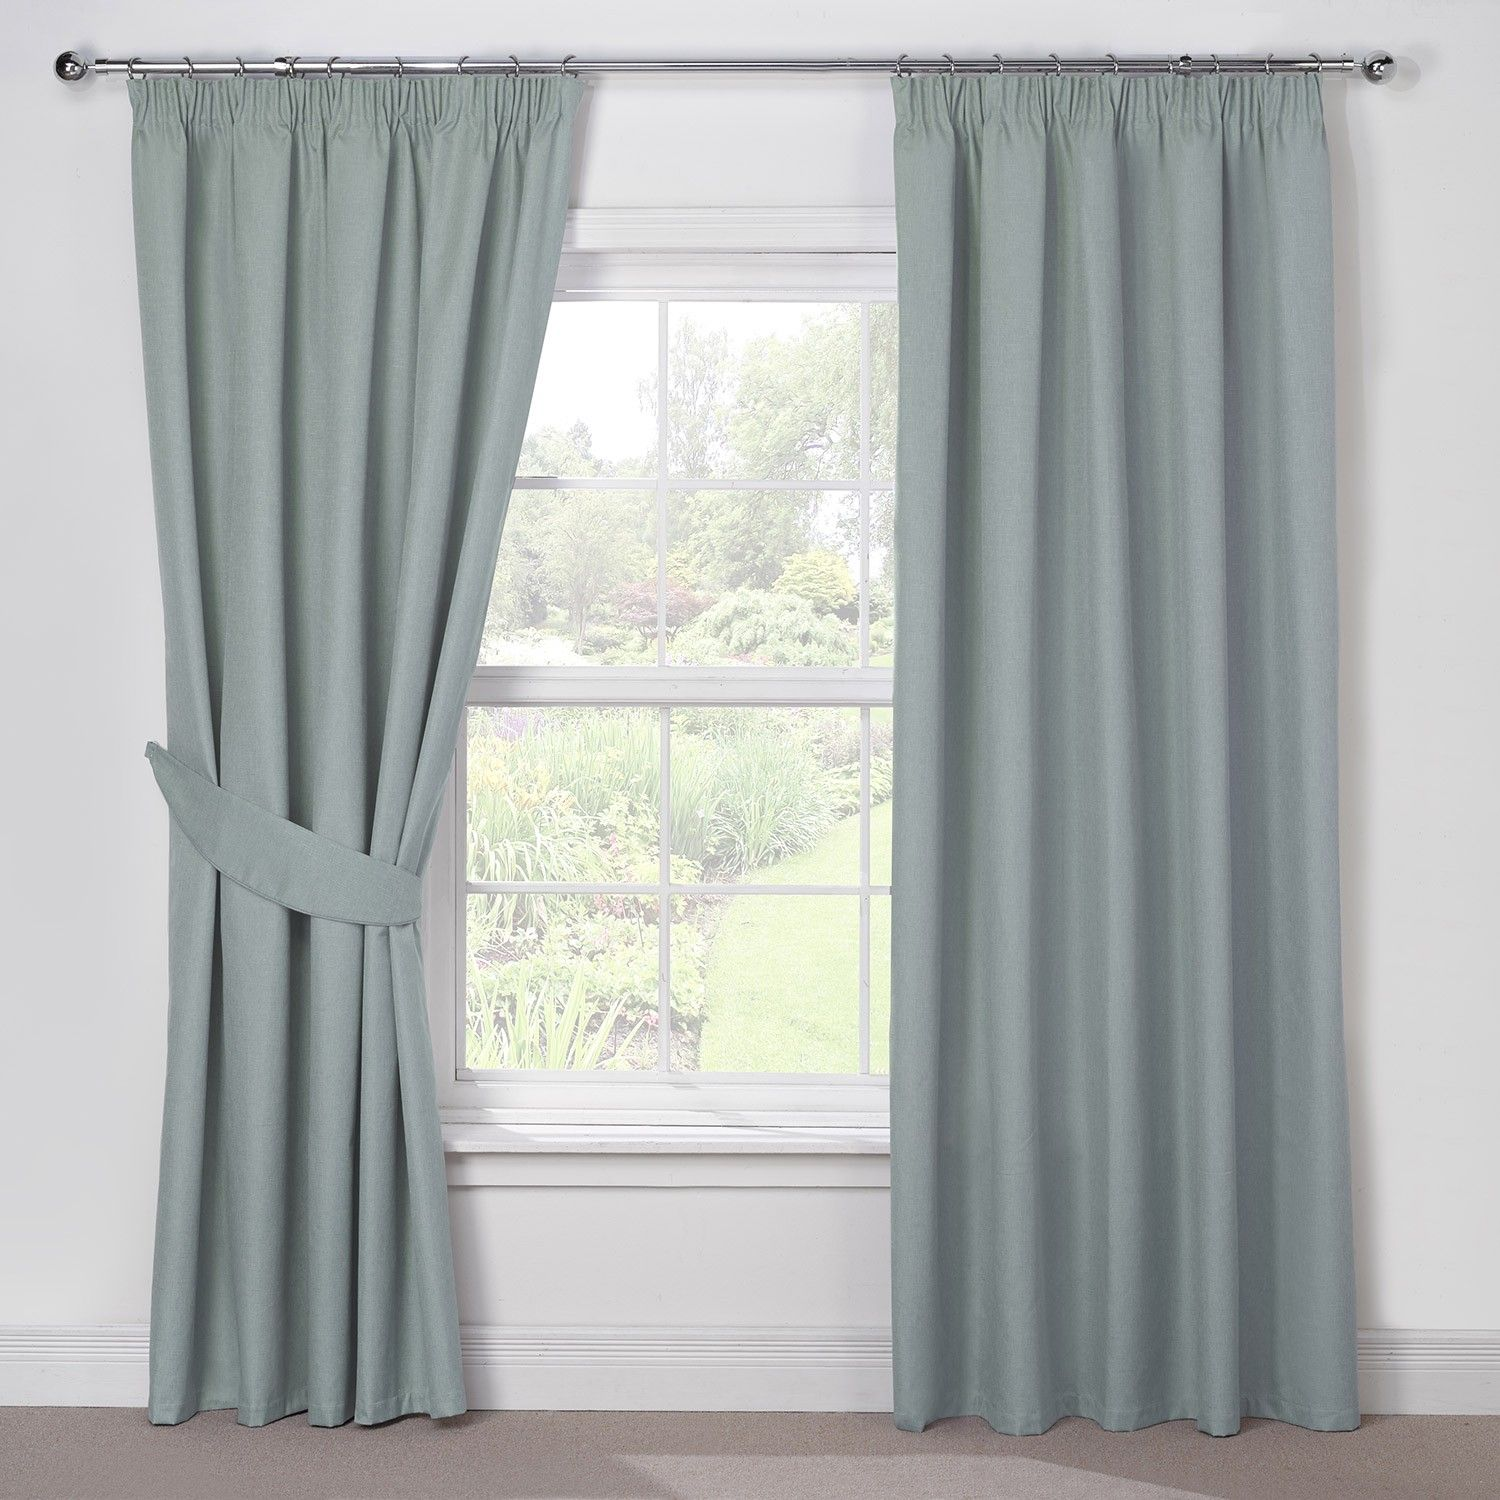 Lila Samt Vorhänge Rot Und Grau Vorhänge Vorhang Krawatte Rücken Blau Und Grün Gemusterte Vorhänge Raum Vo Grey Blackout Curtains Curtains Blackout Curtains - Vorhang Grün Blau